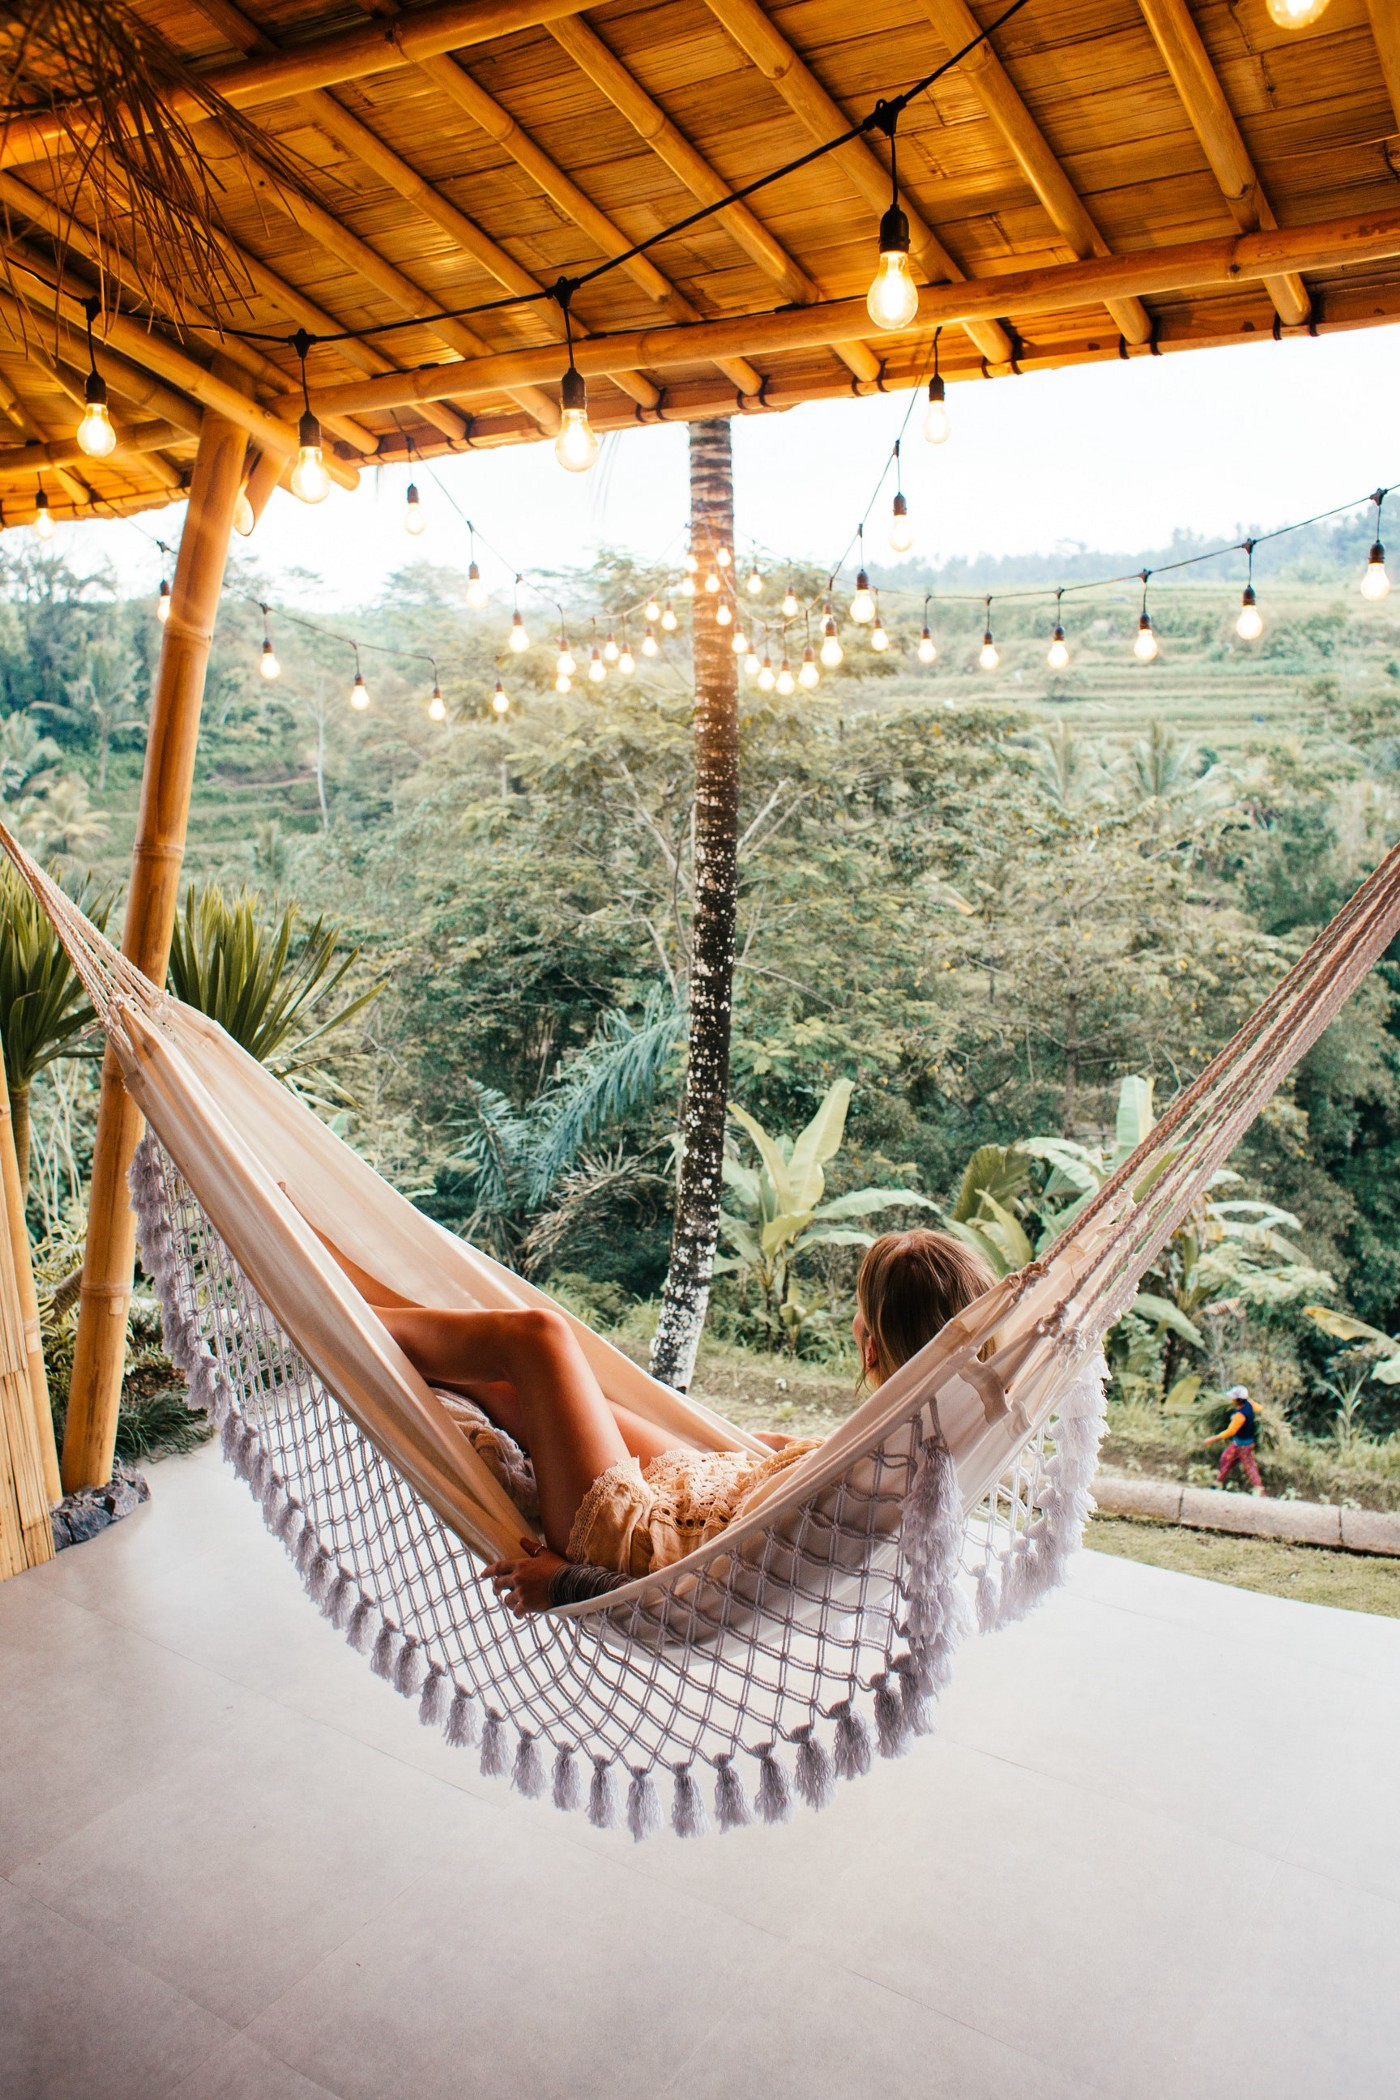 Woman laying in a hammock on a porch, overlooking nature.